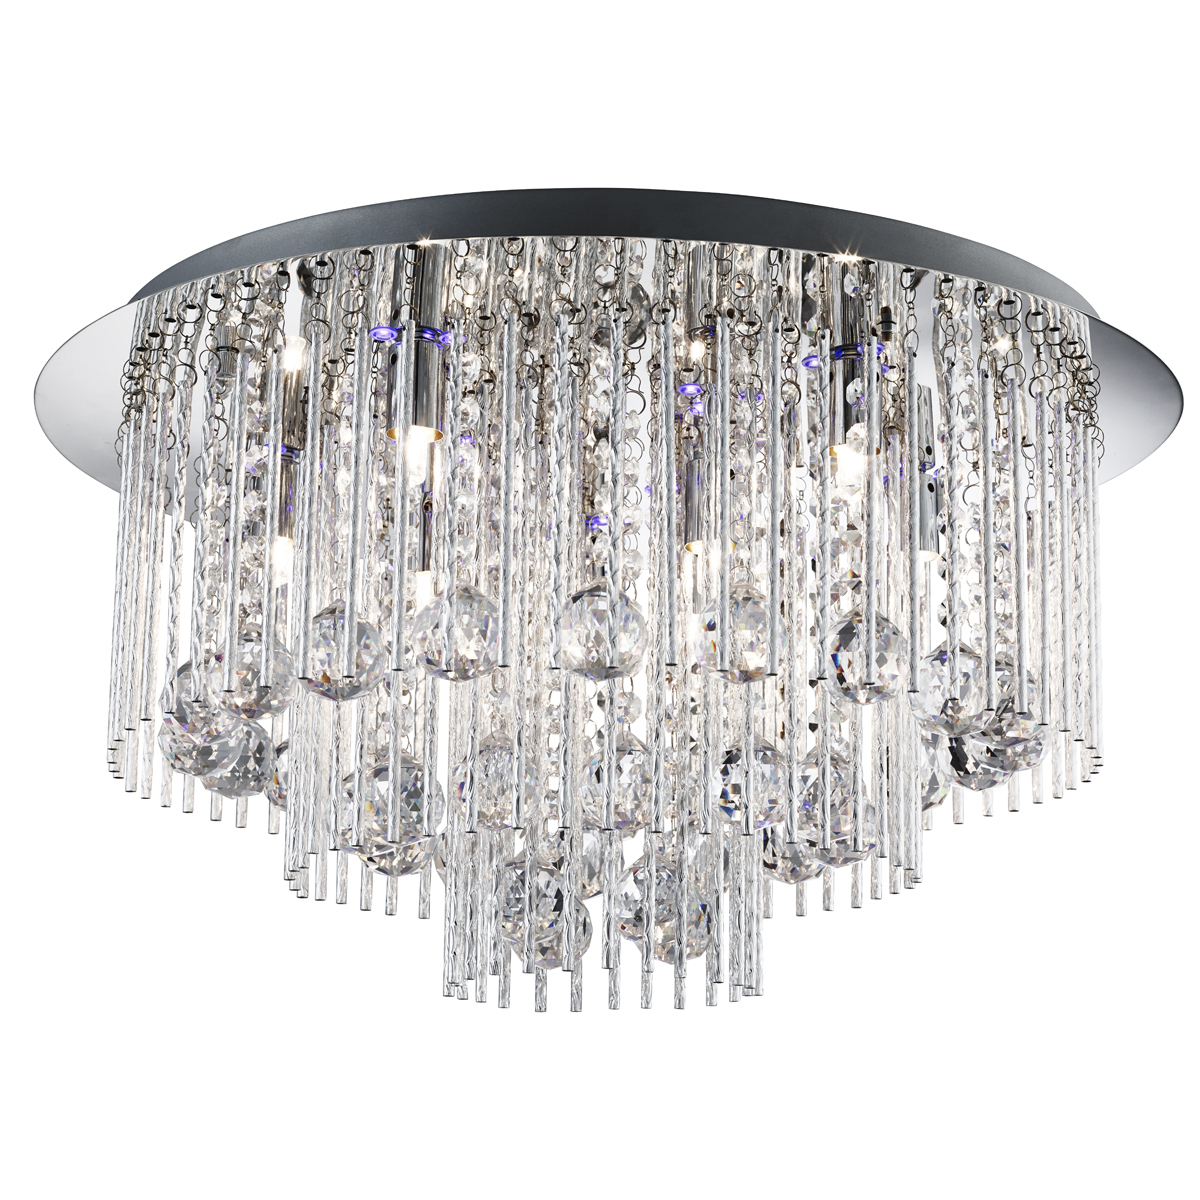 Home – Astral Lighting Ltd Pertaining To Recent Hatfield 3 Light Novelty Chandeliers (Gallery 24 of 25)